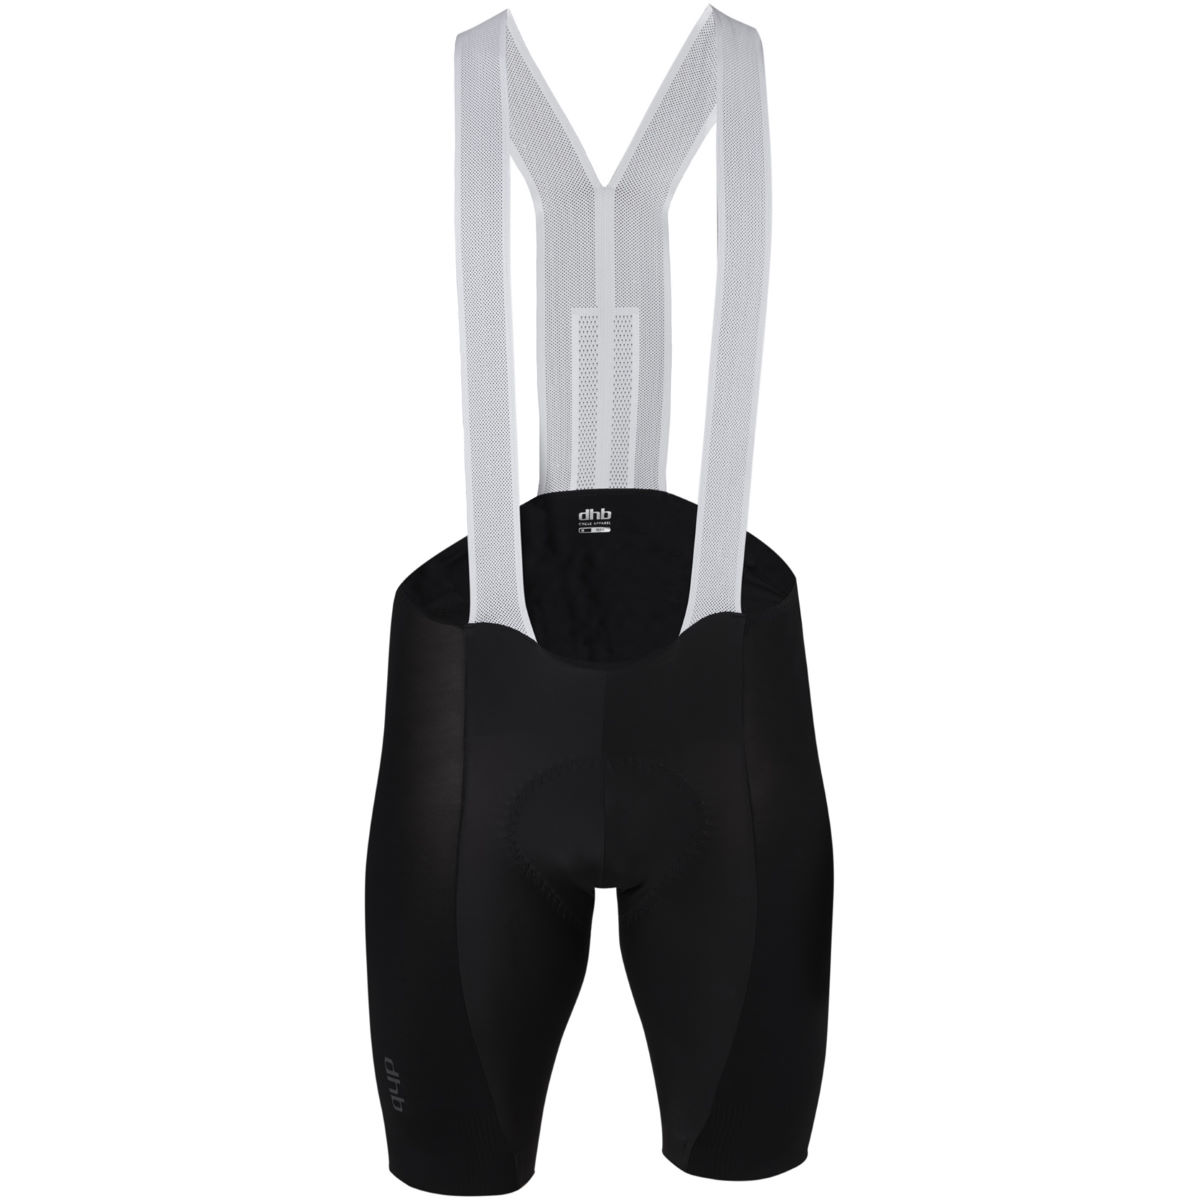 dhb Aeron Lab Ultralight Bib Short - Small Black | Bib Shorts